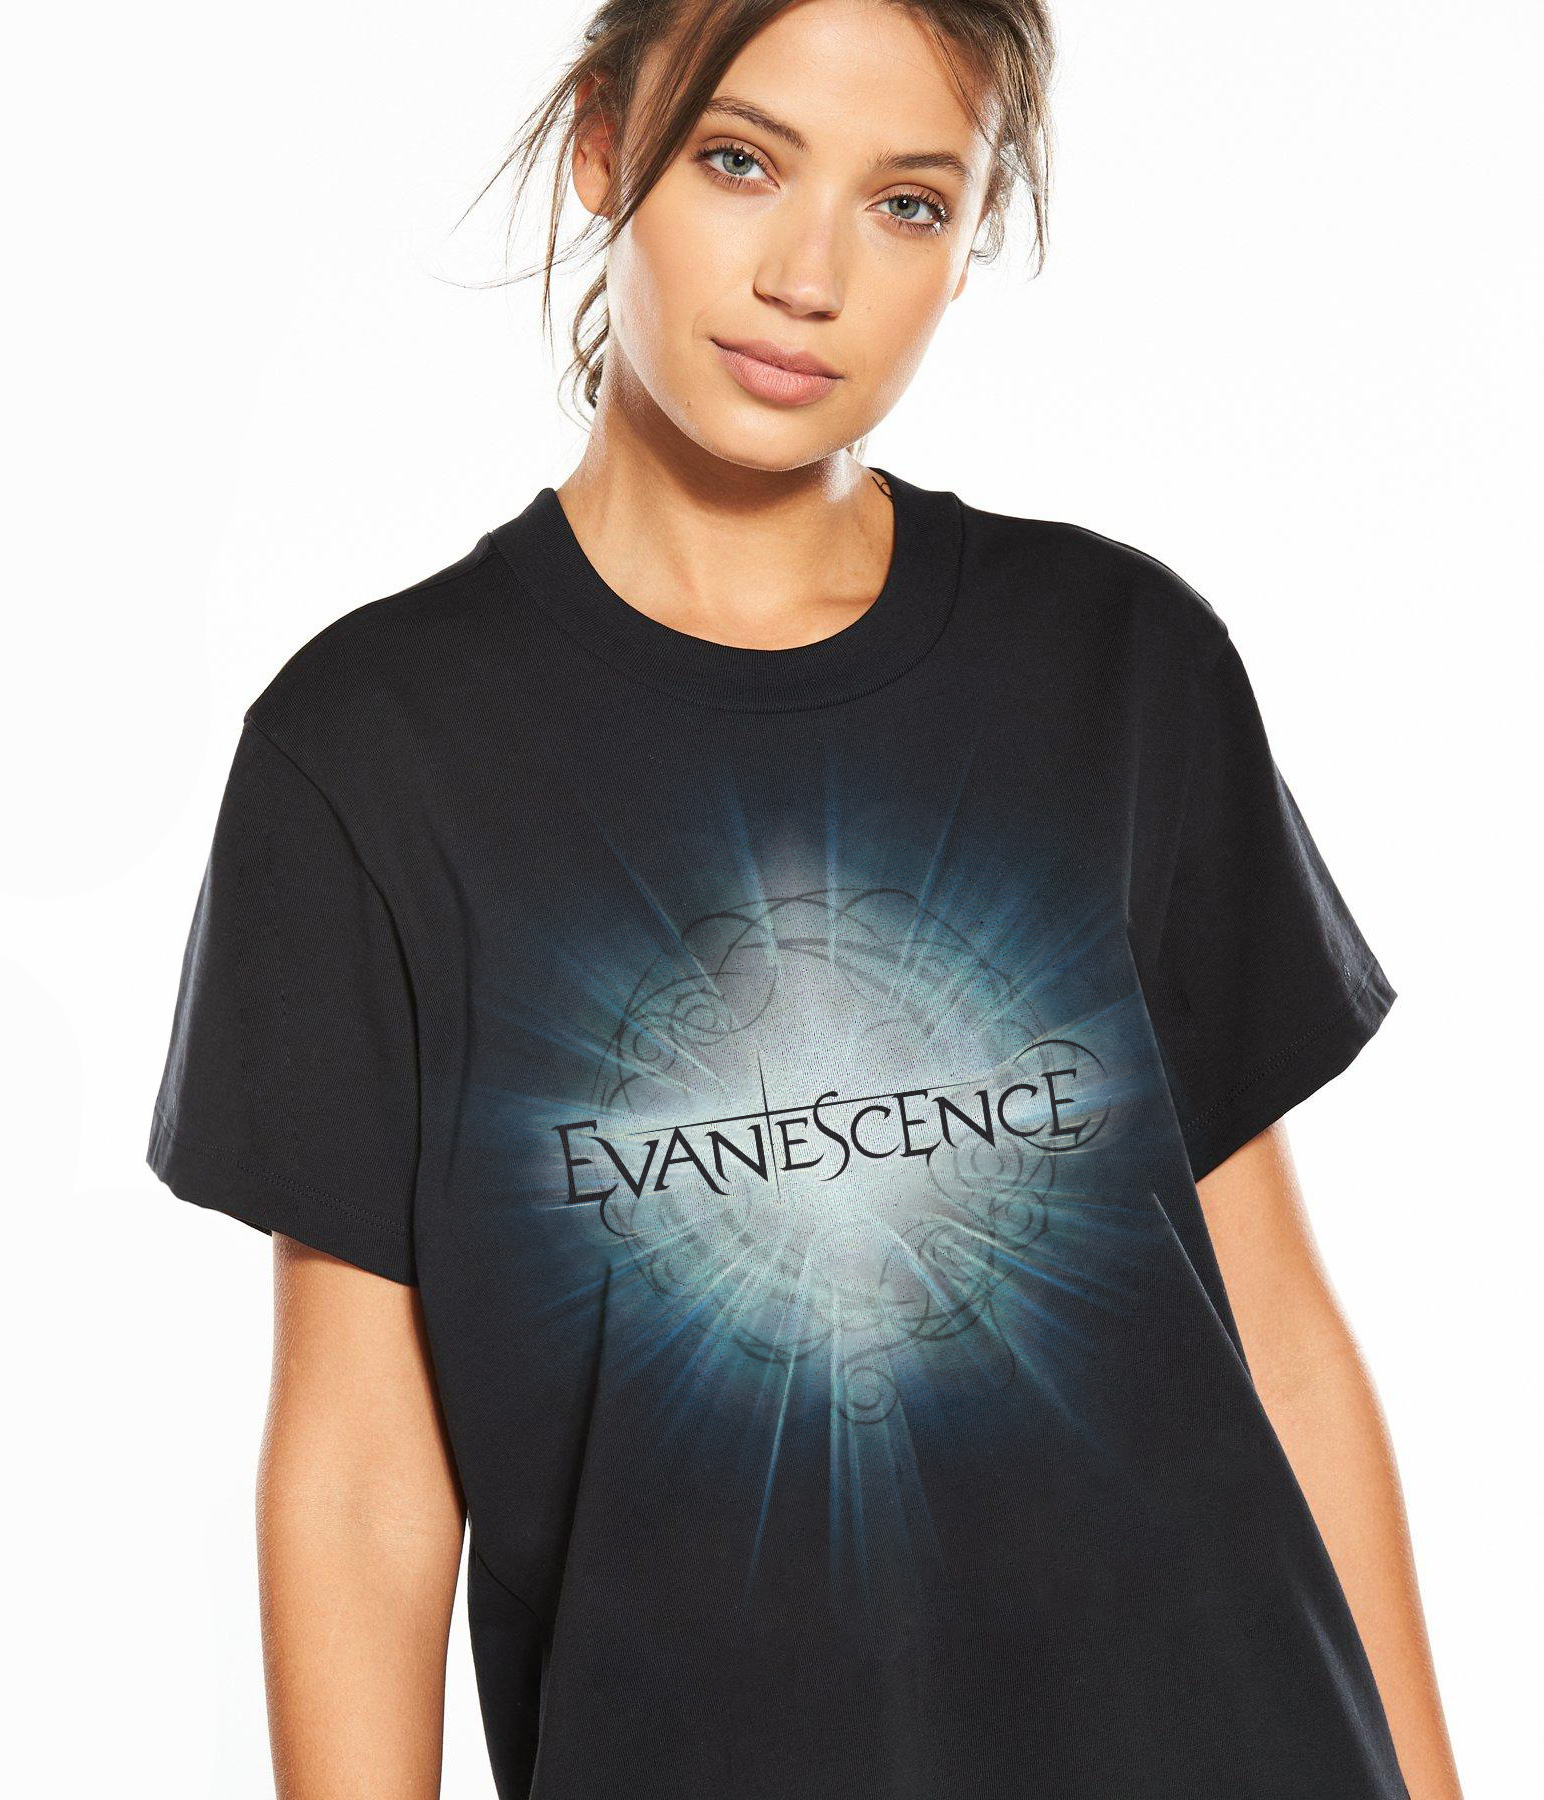 evanescence-shine-model.jpg